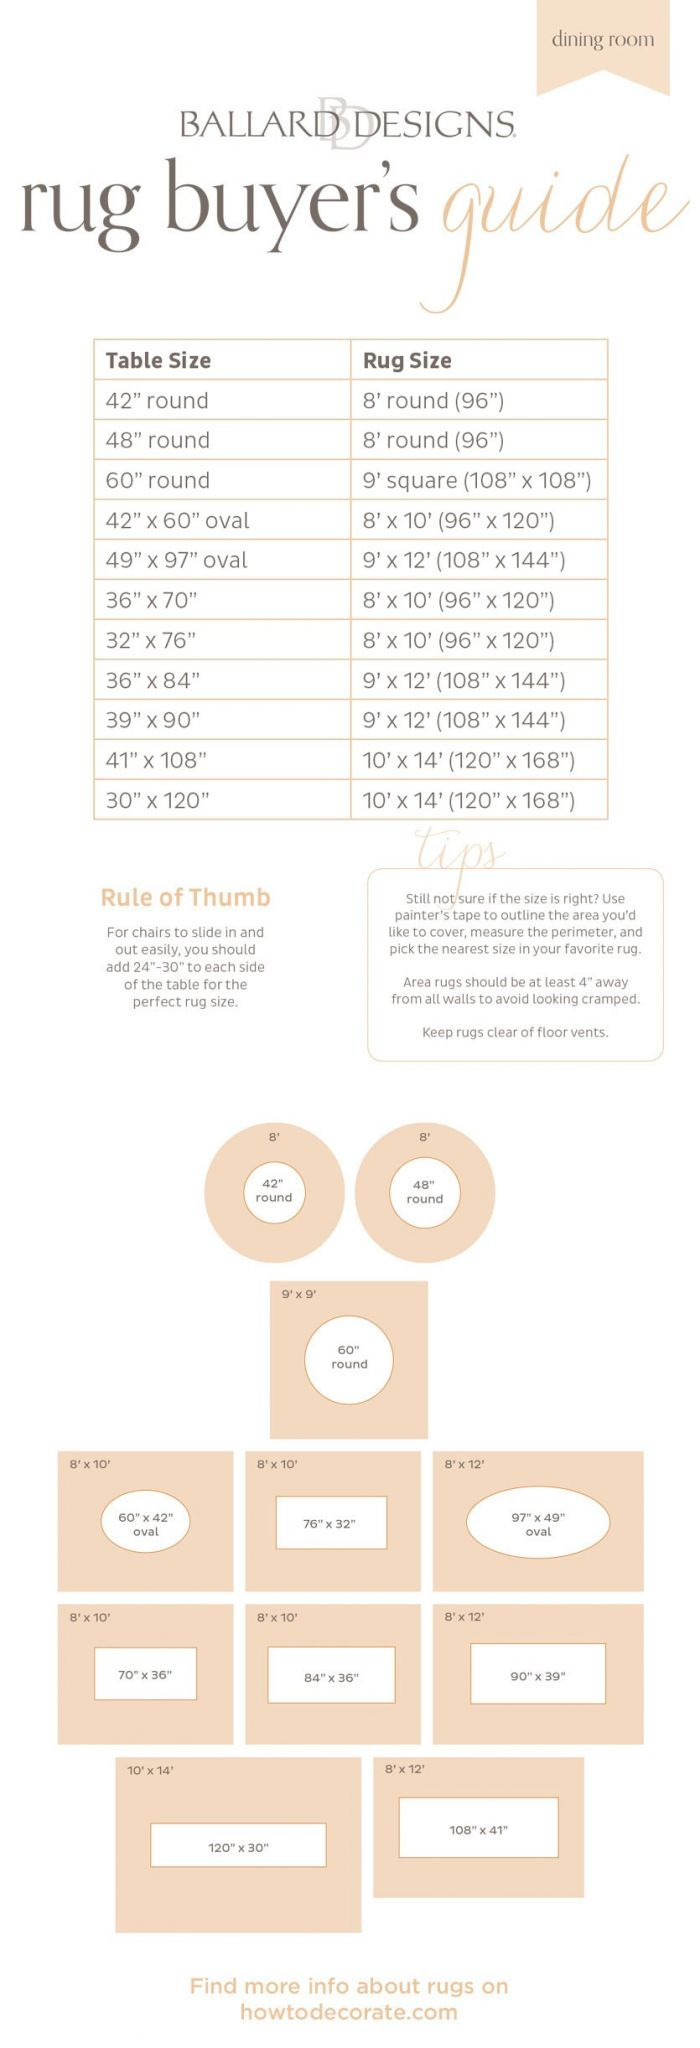 Guide to Choosing a Rug Size | Rugs in living room, Dining ...